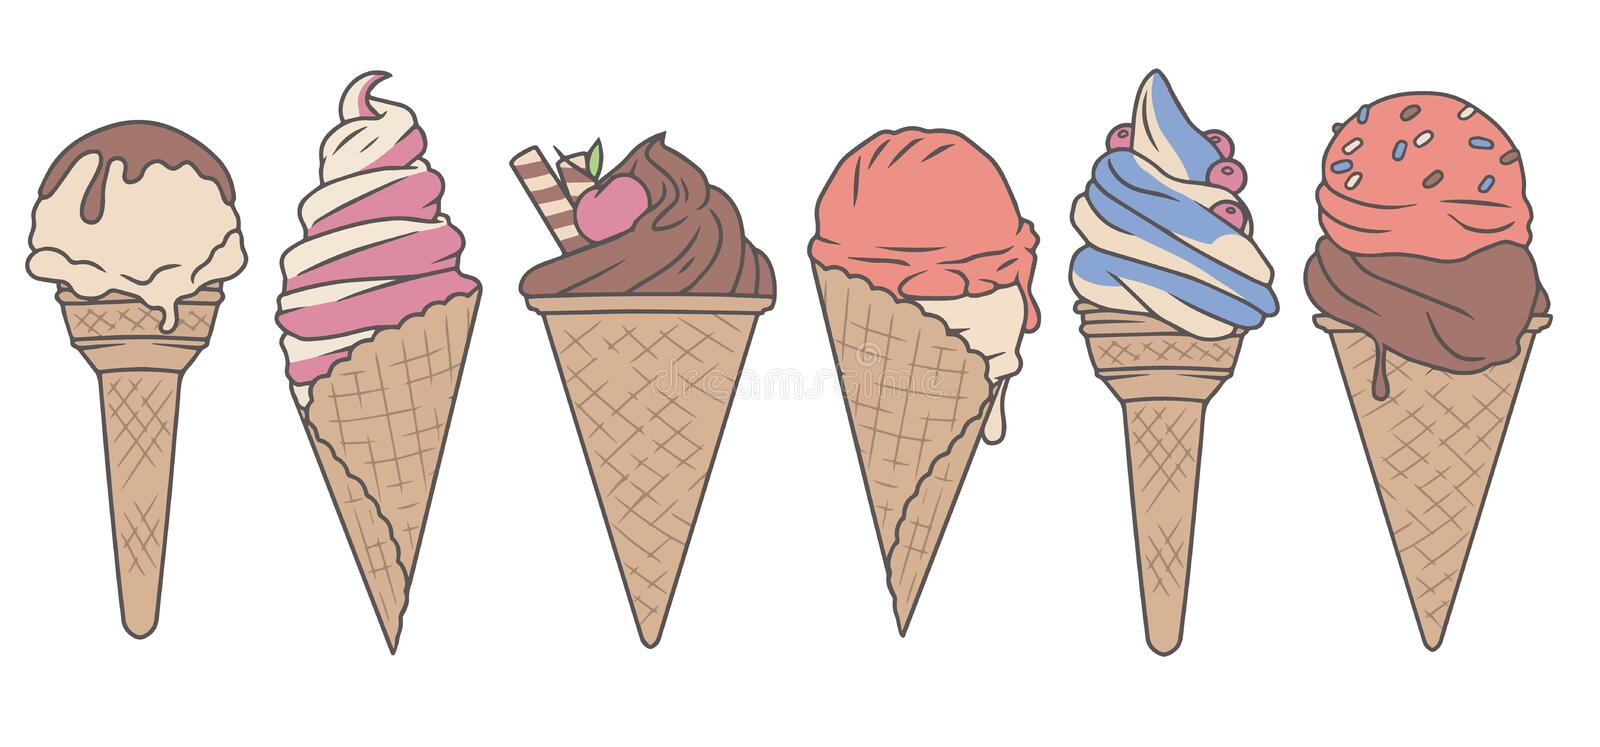 Vector colection set with cute delicious looking cartoon ice cream cones royalty free illustration